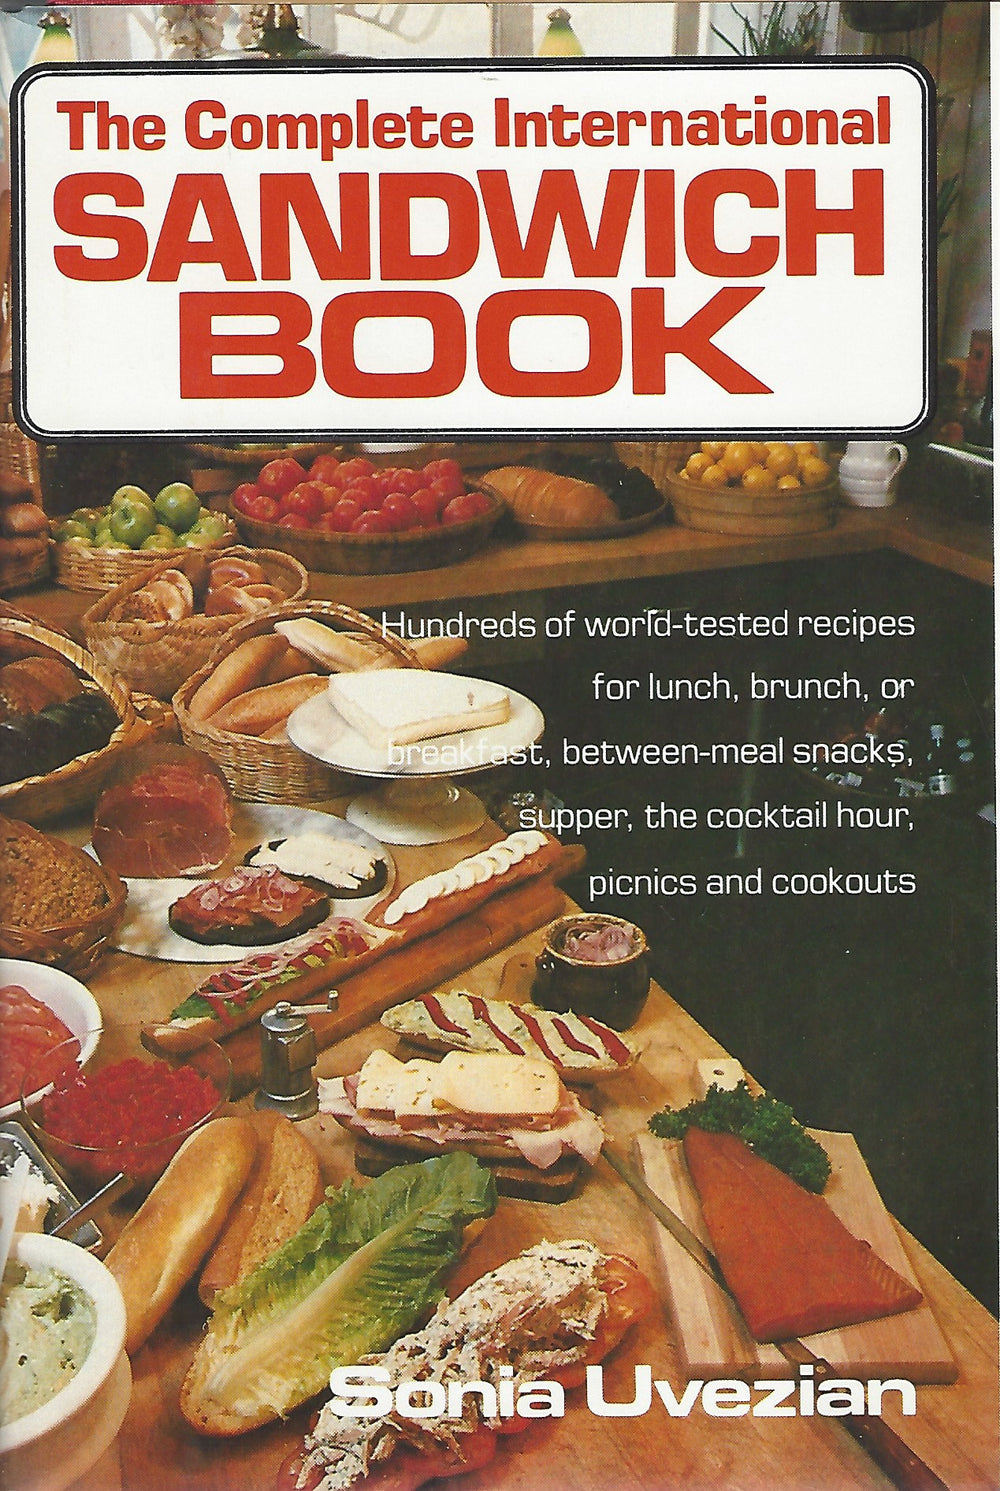 The Complete International Sandwich Book by Sonia Uvenzian Hardcover (1982)